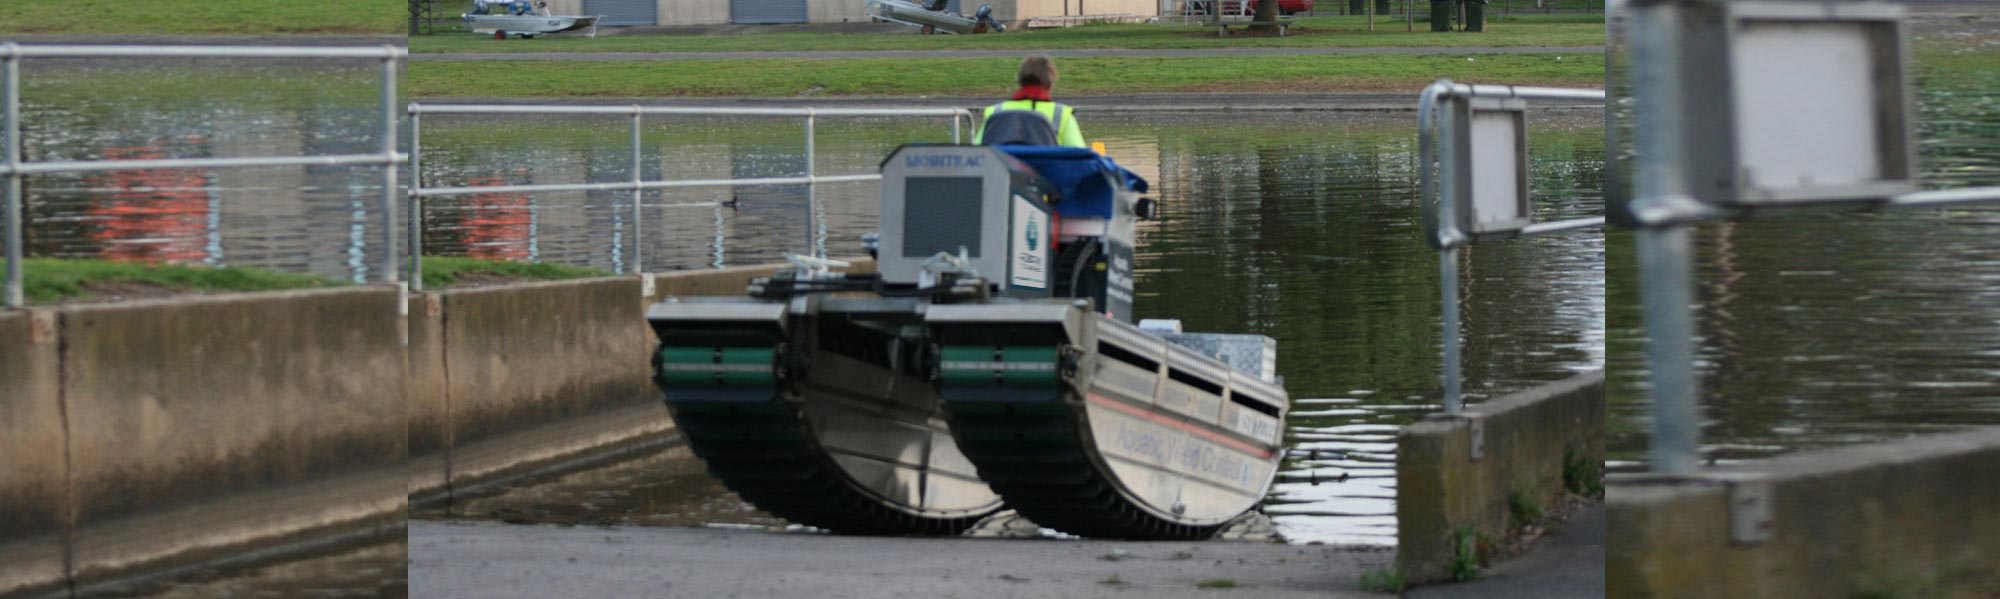 Mobitrac-amphibious-harvester-39